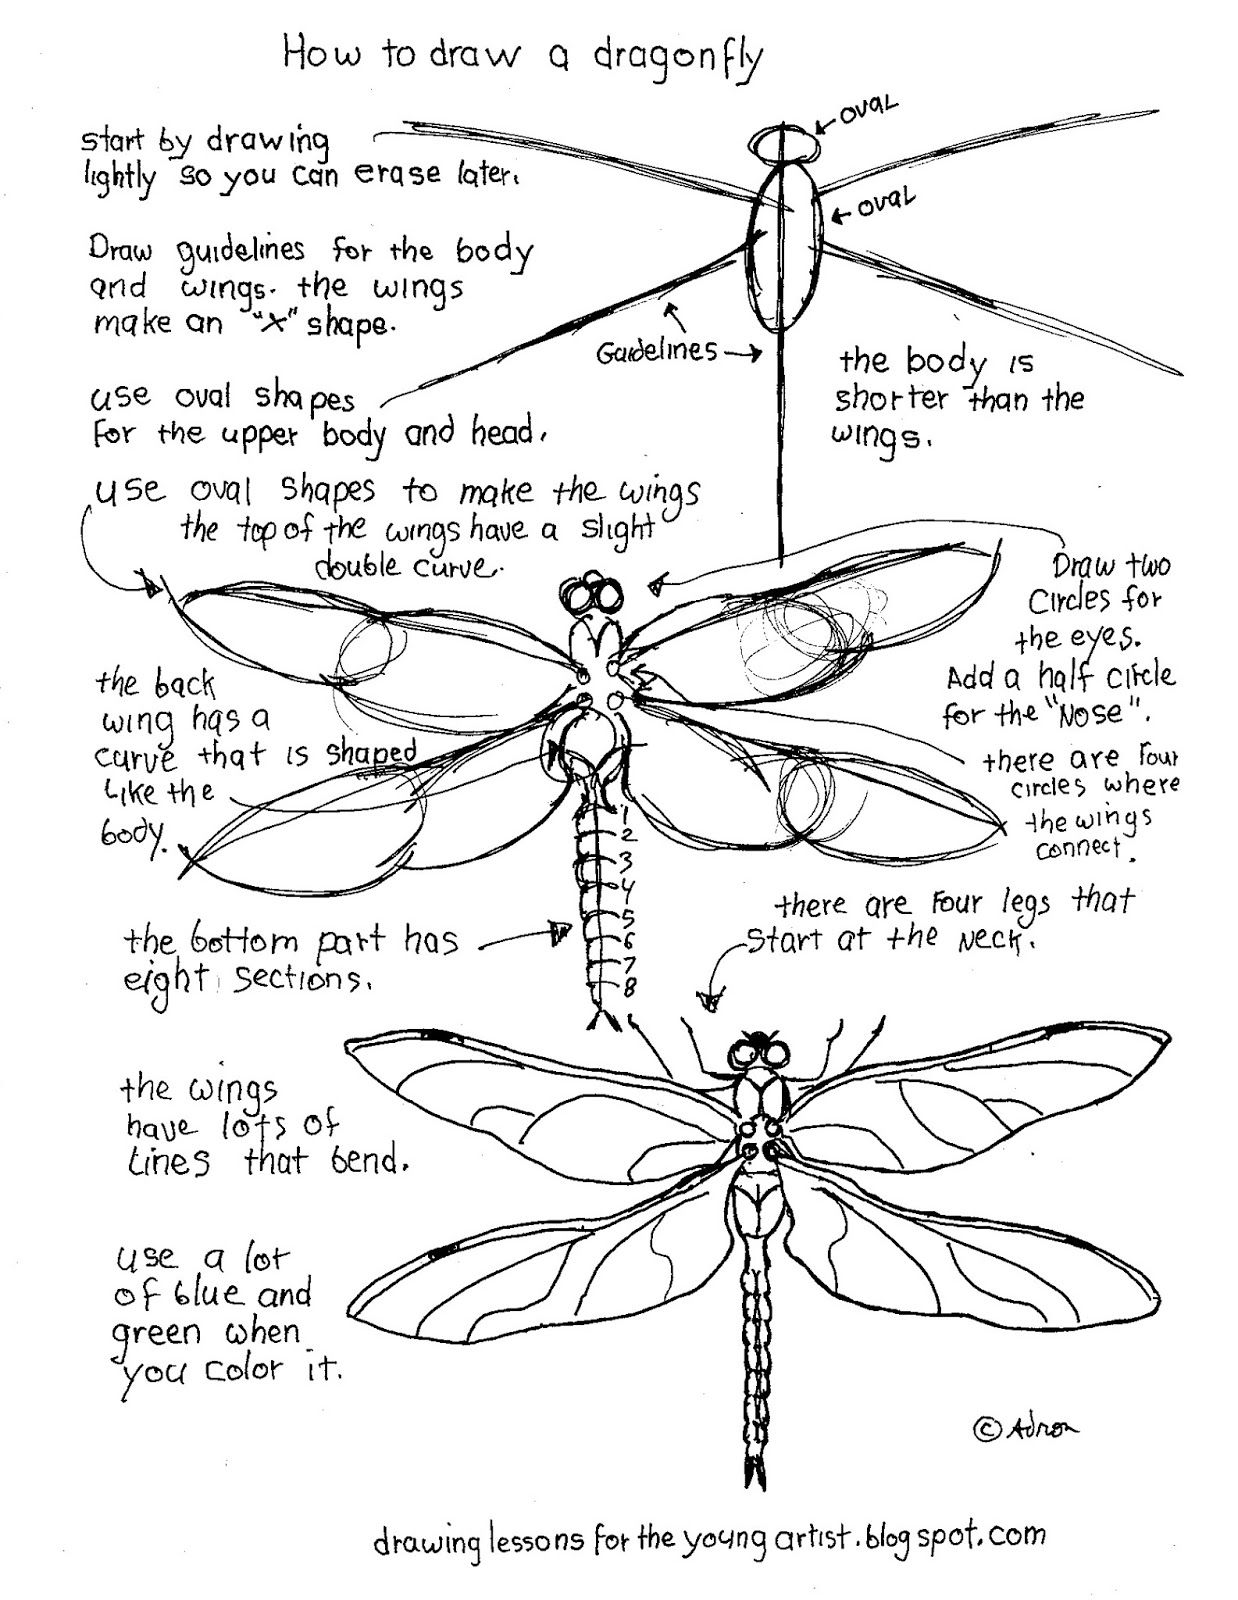 worksheet Drawing Worksheets how to draw worksheets for the young artist printable a dragonfly worksheet